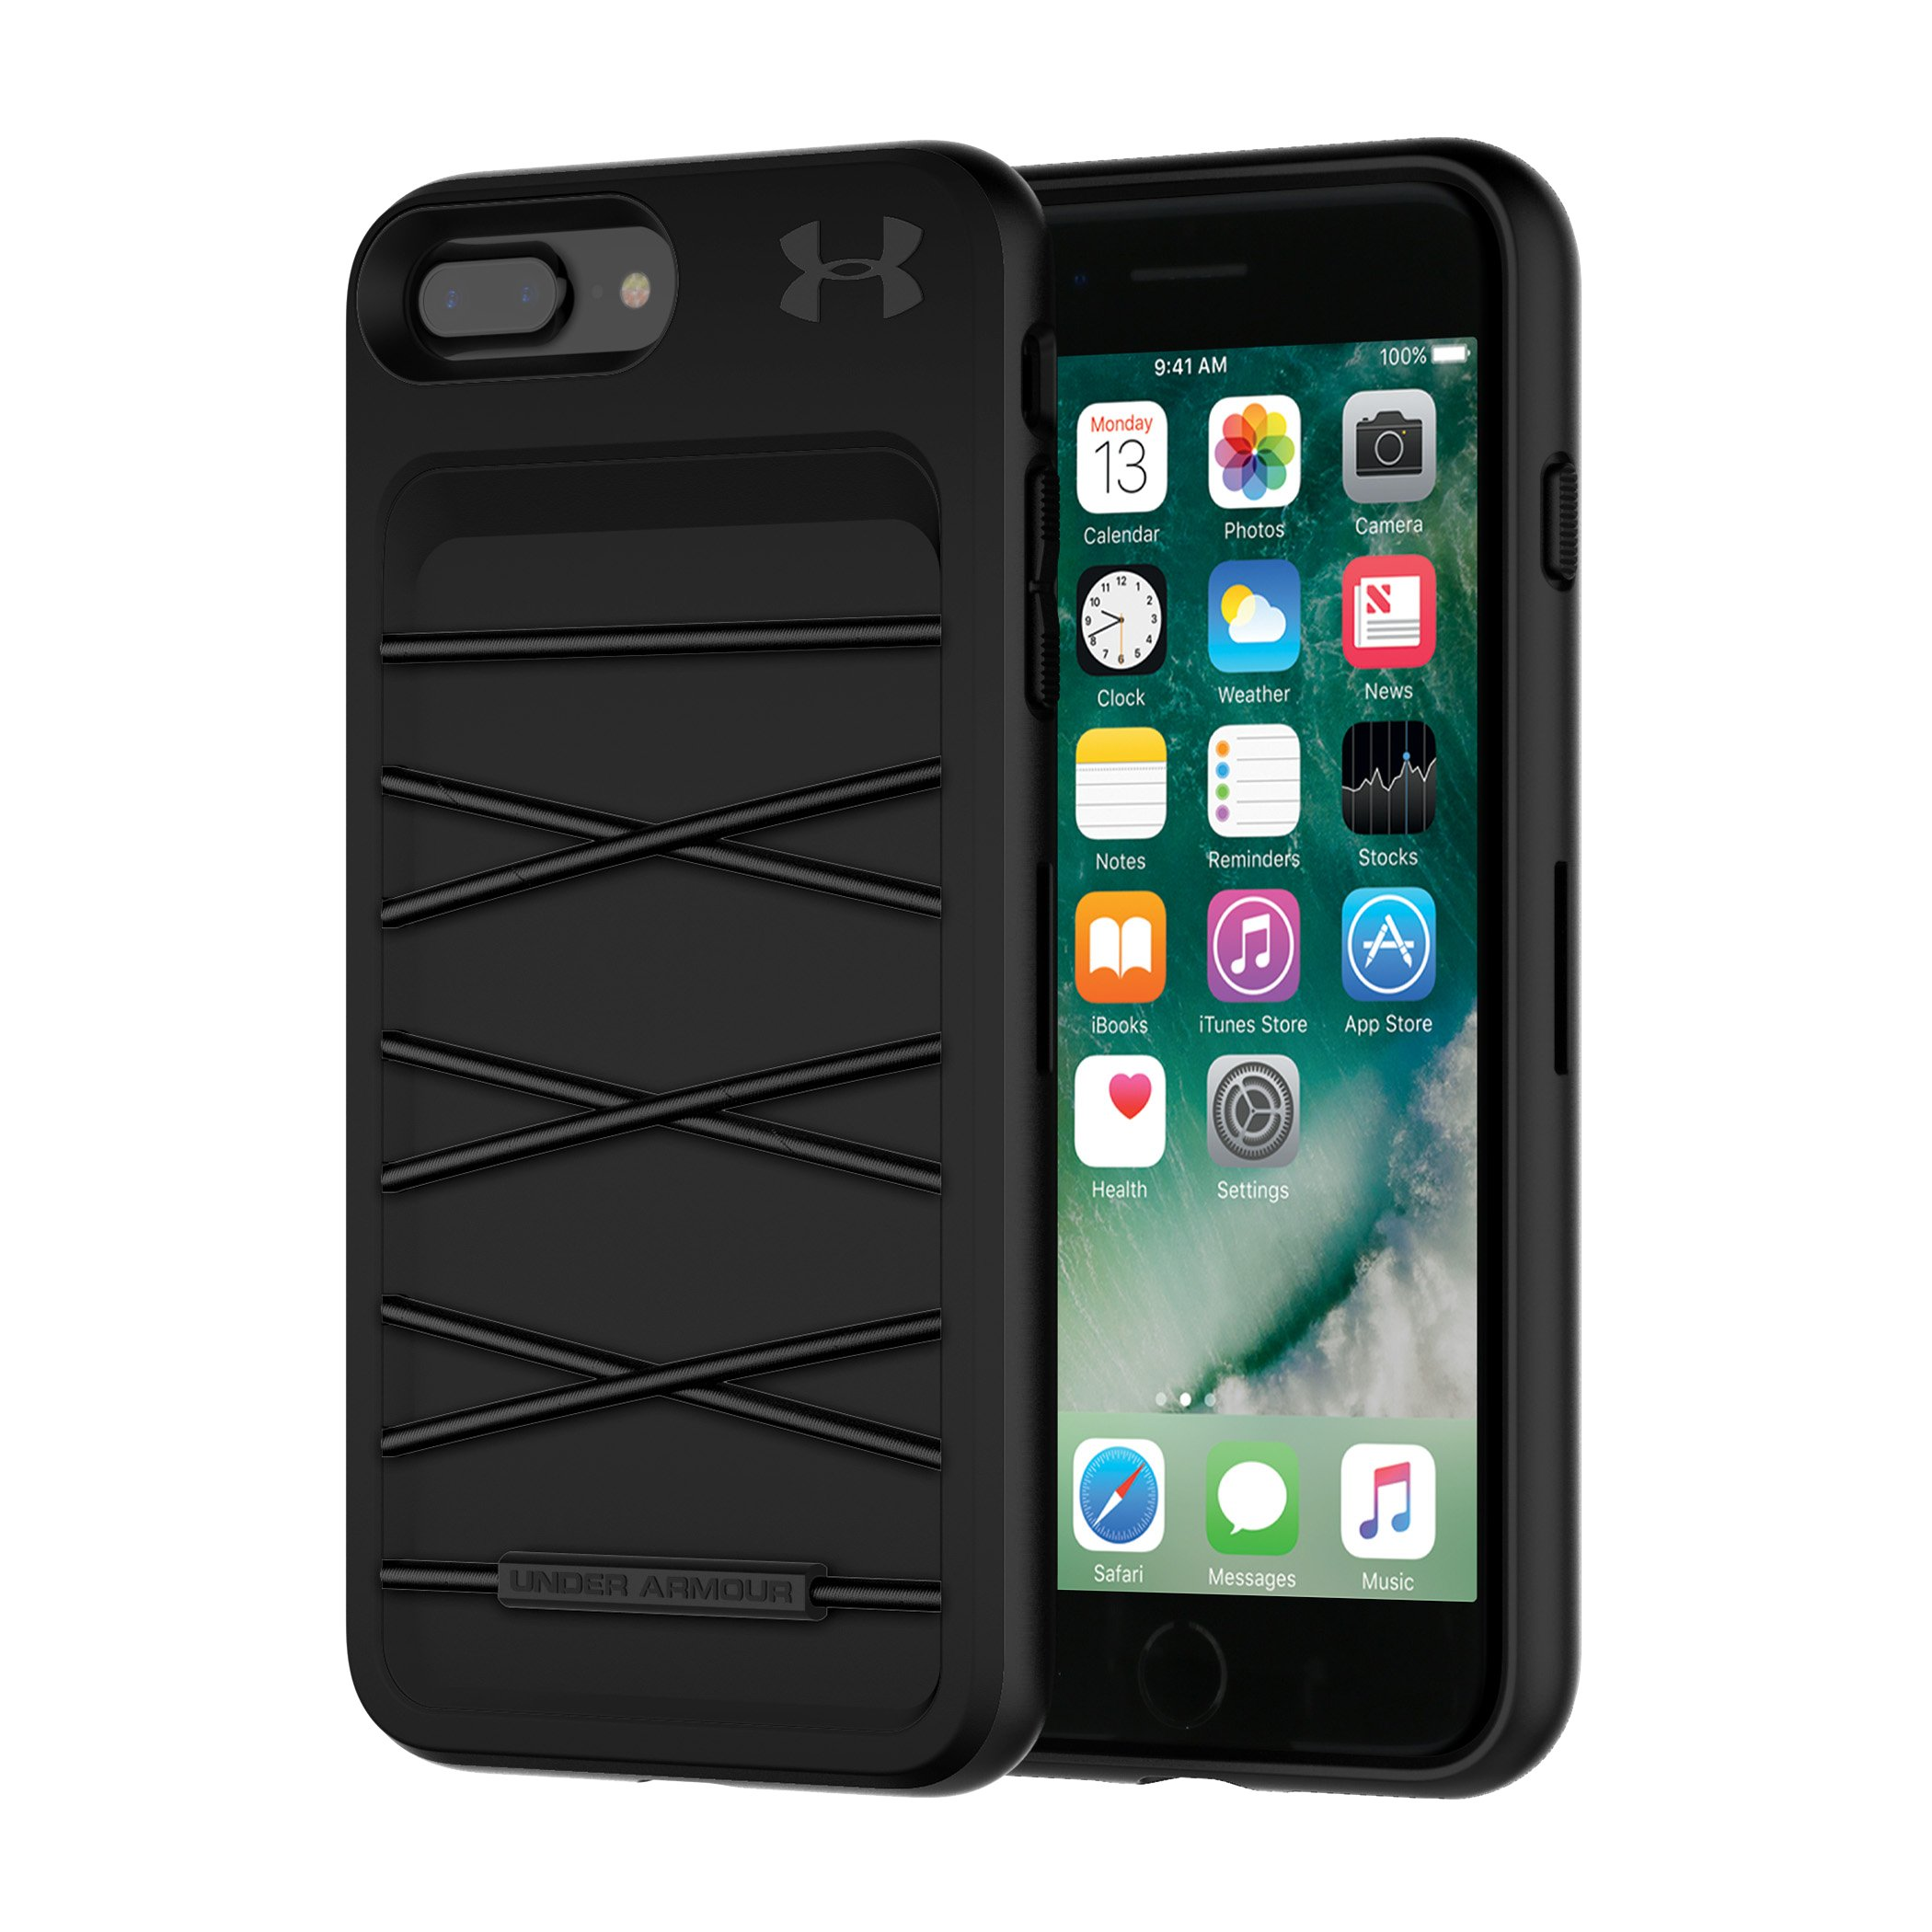 UA Protect Arsenal Case for iPhone 8 Plus/7 Plus 2 Colors $39.99